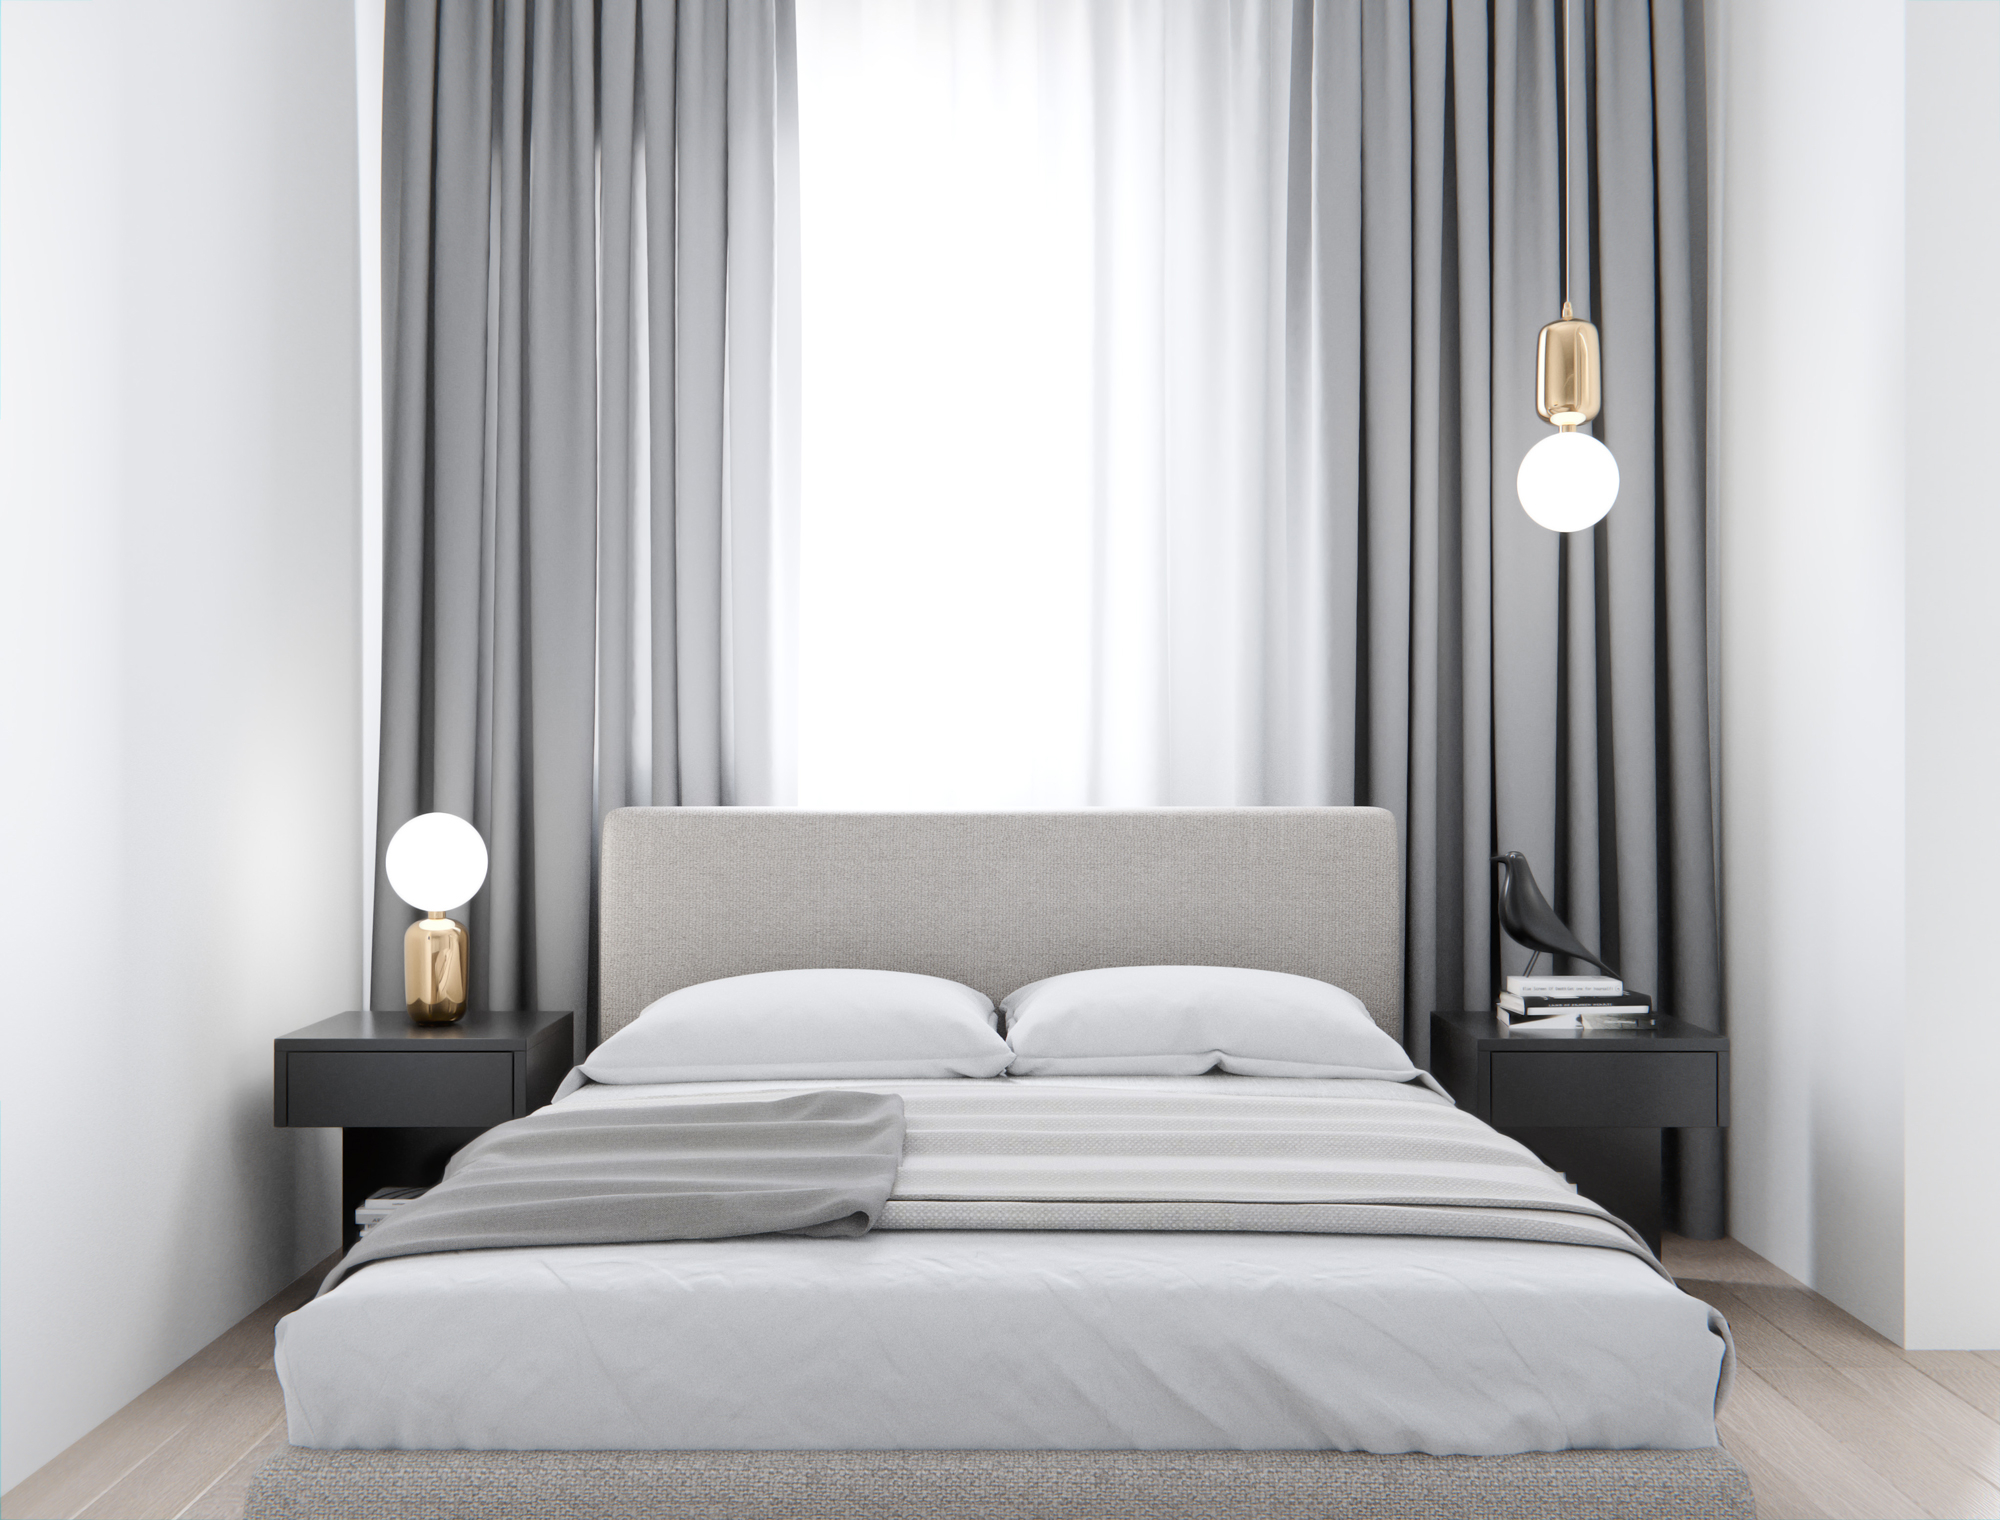 Bedroom Ideas 52 Modern Design Ideas For Your Bedroom The Luxpad pertaining to Modern Simple Bedroom Design